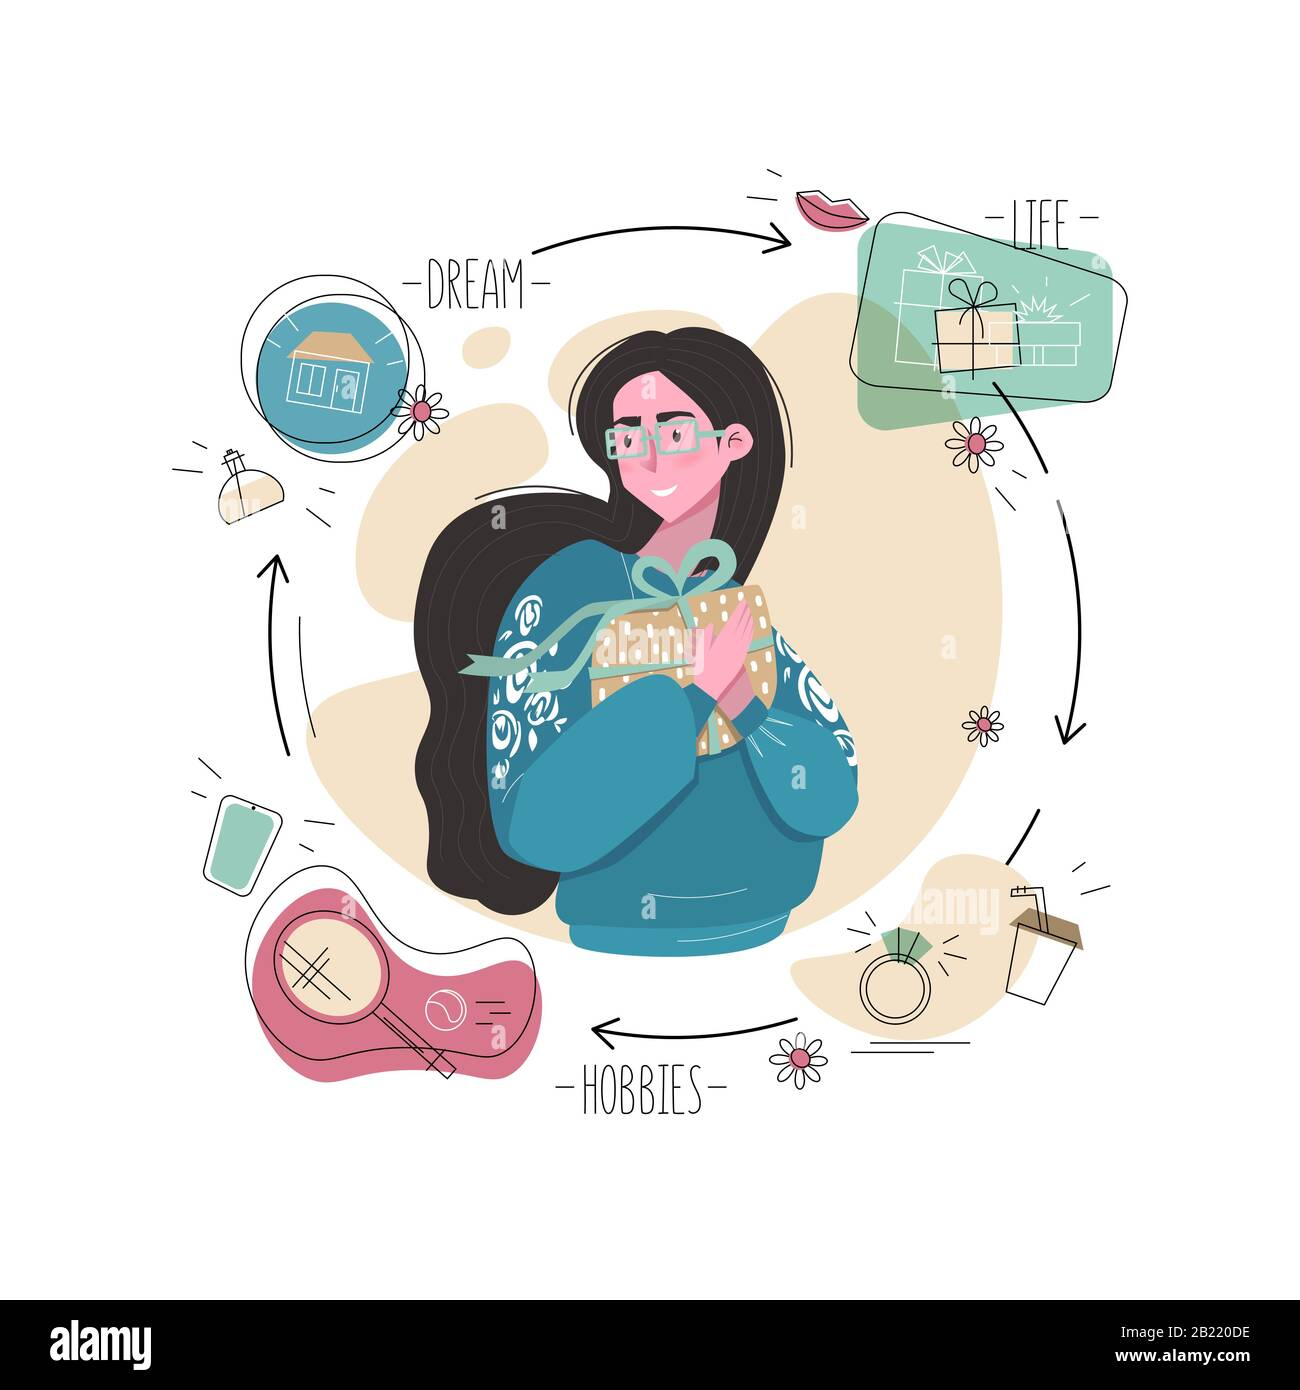 Gift and young woman illustration .Female in glasses holding present with  bow and smile.Concept of life, hobbies, important things,sport,coffee  cup,ri Stock Vector Image & Art - Alamy